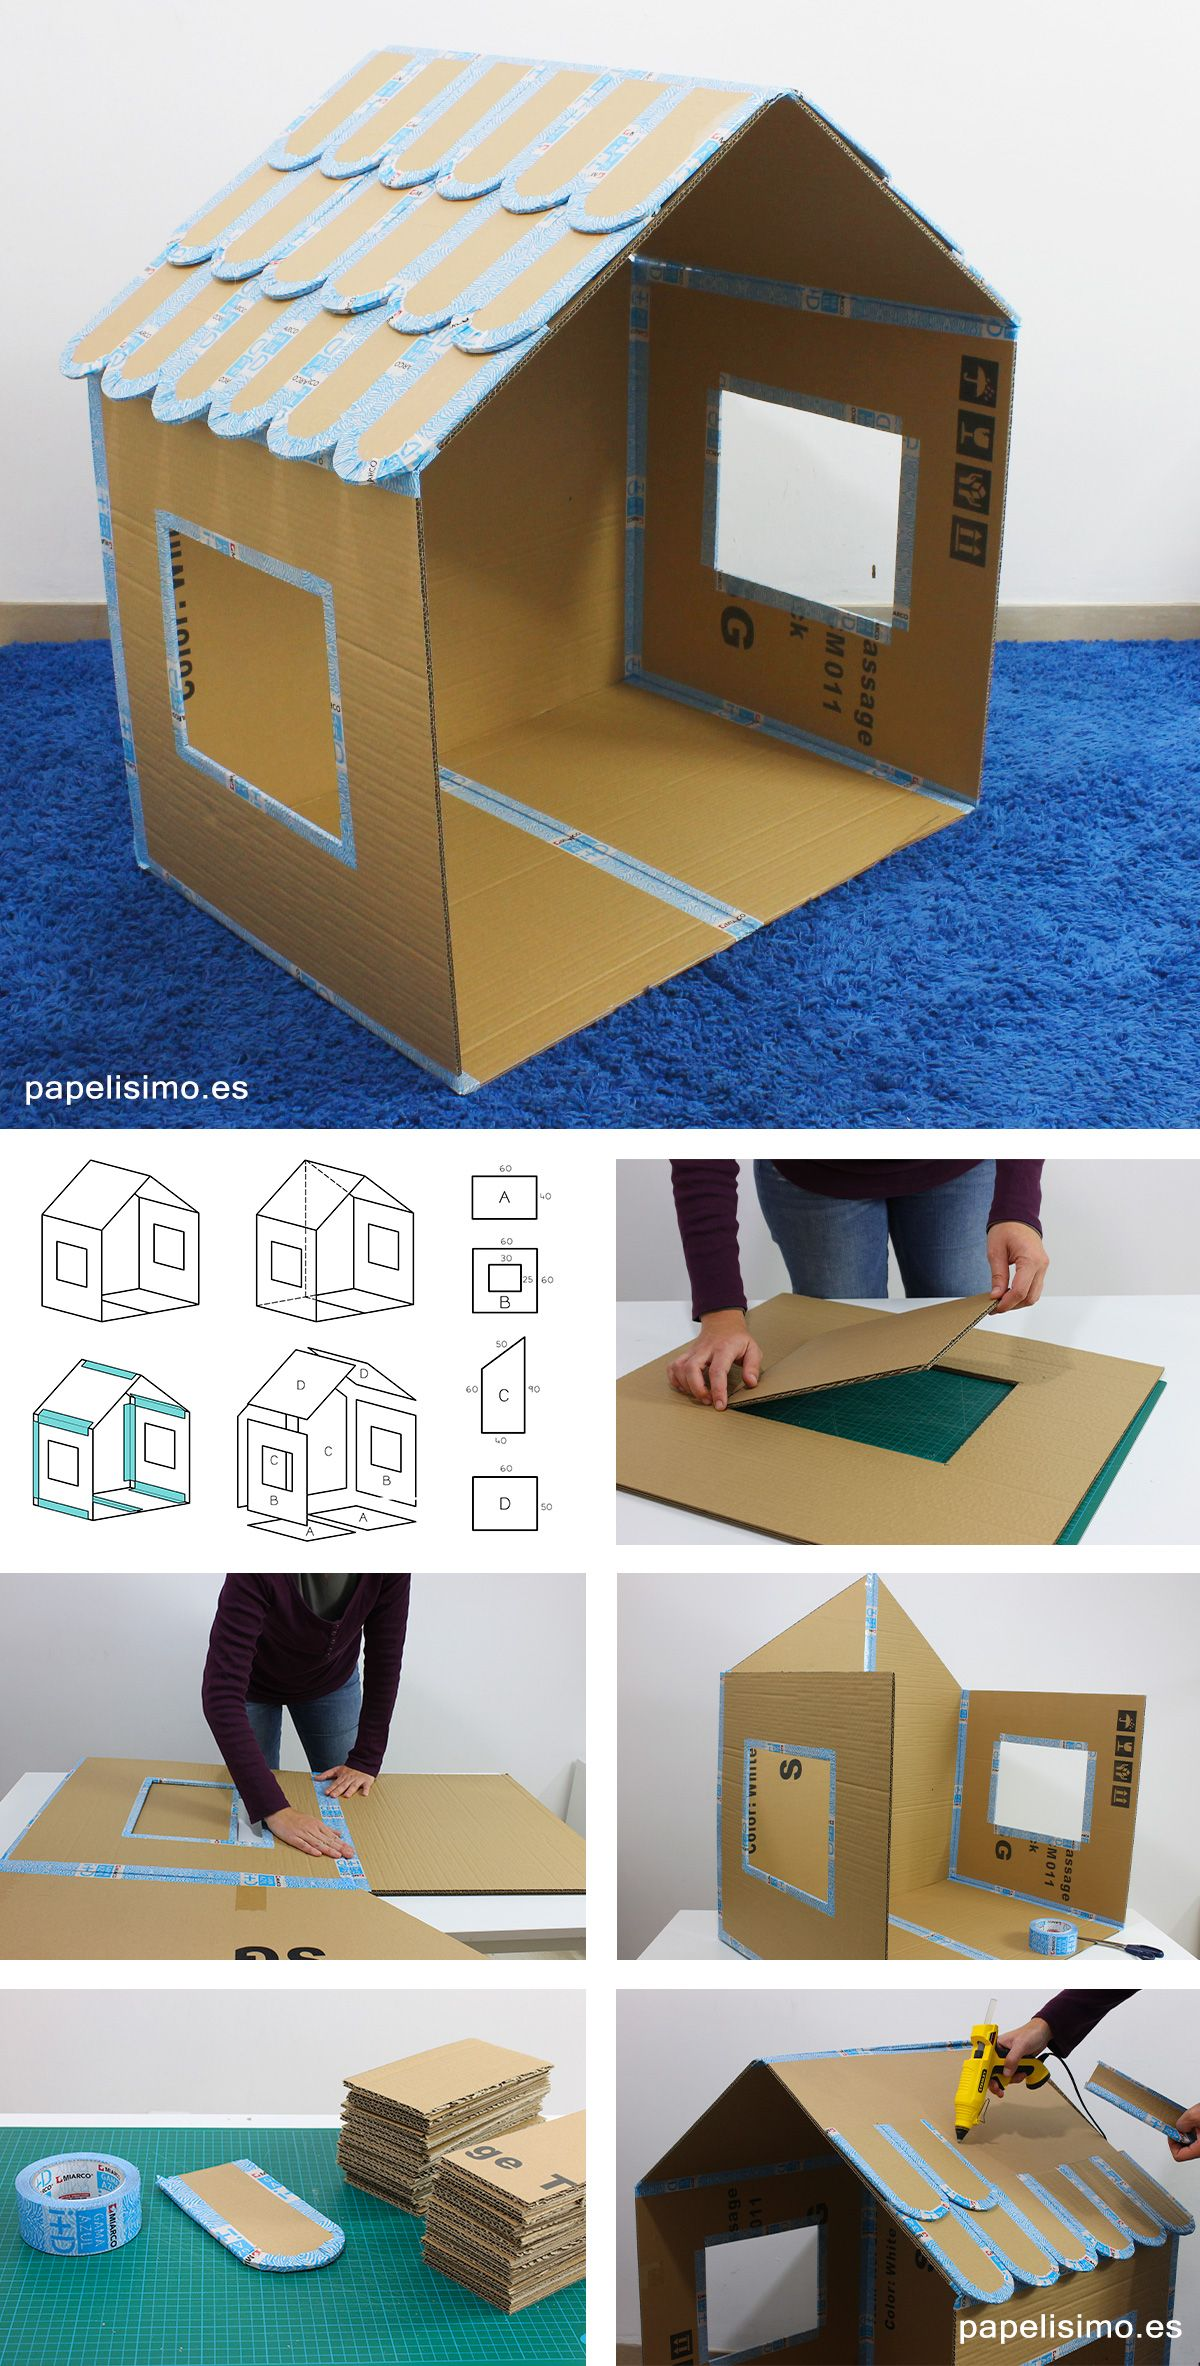 Casa de carton plegable folding cardboard house diy papelisimo pinterest cart n casas de - Ideas para construir una casa ...